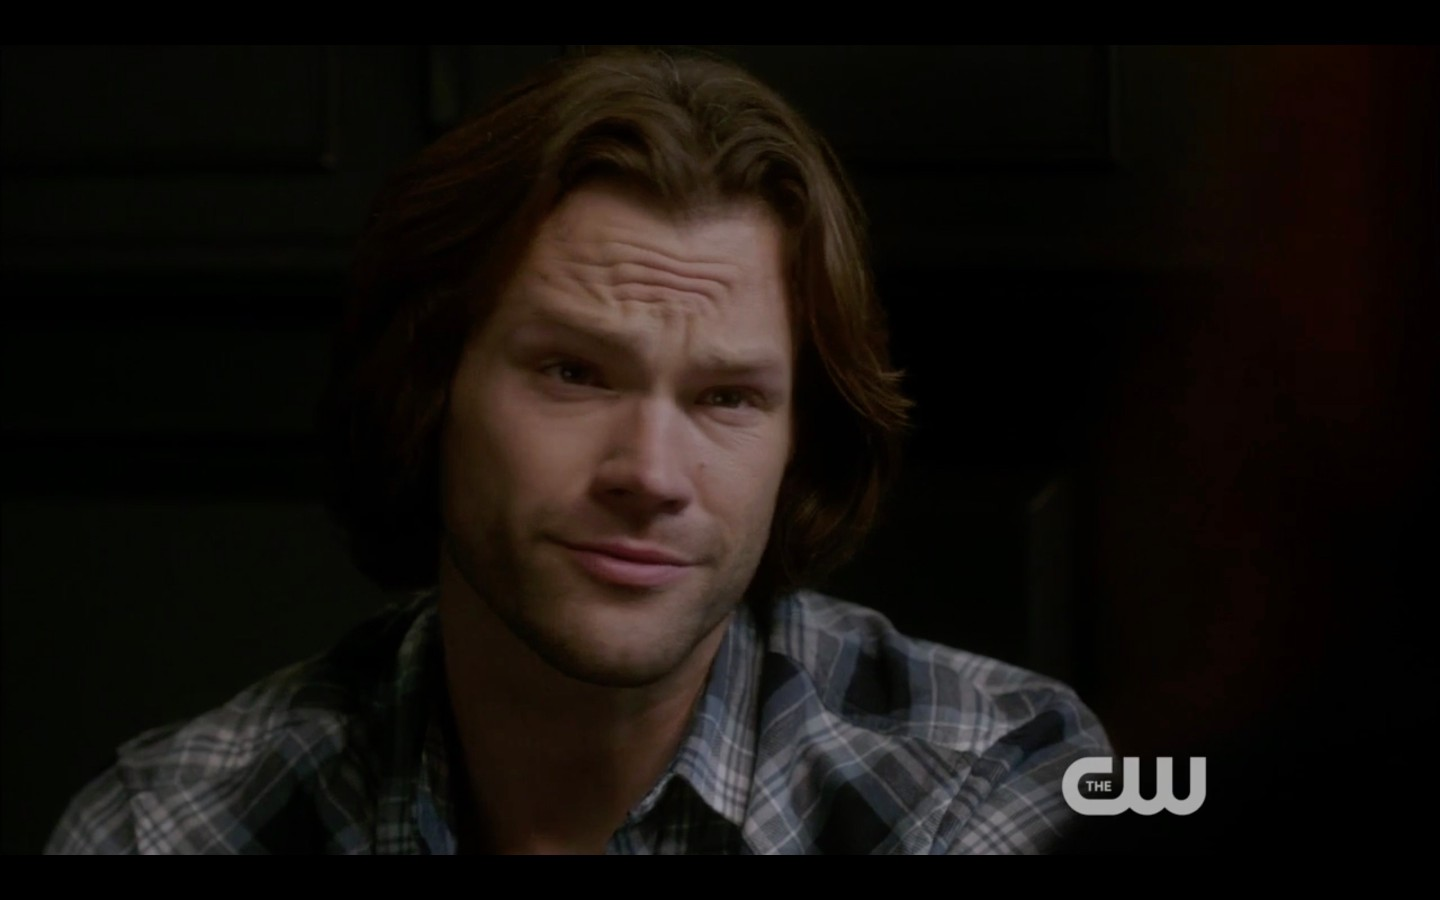 sam winchester to rowena you changed other peoples fats maybe we can change yours